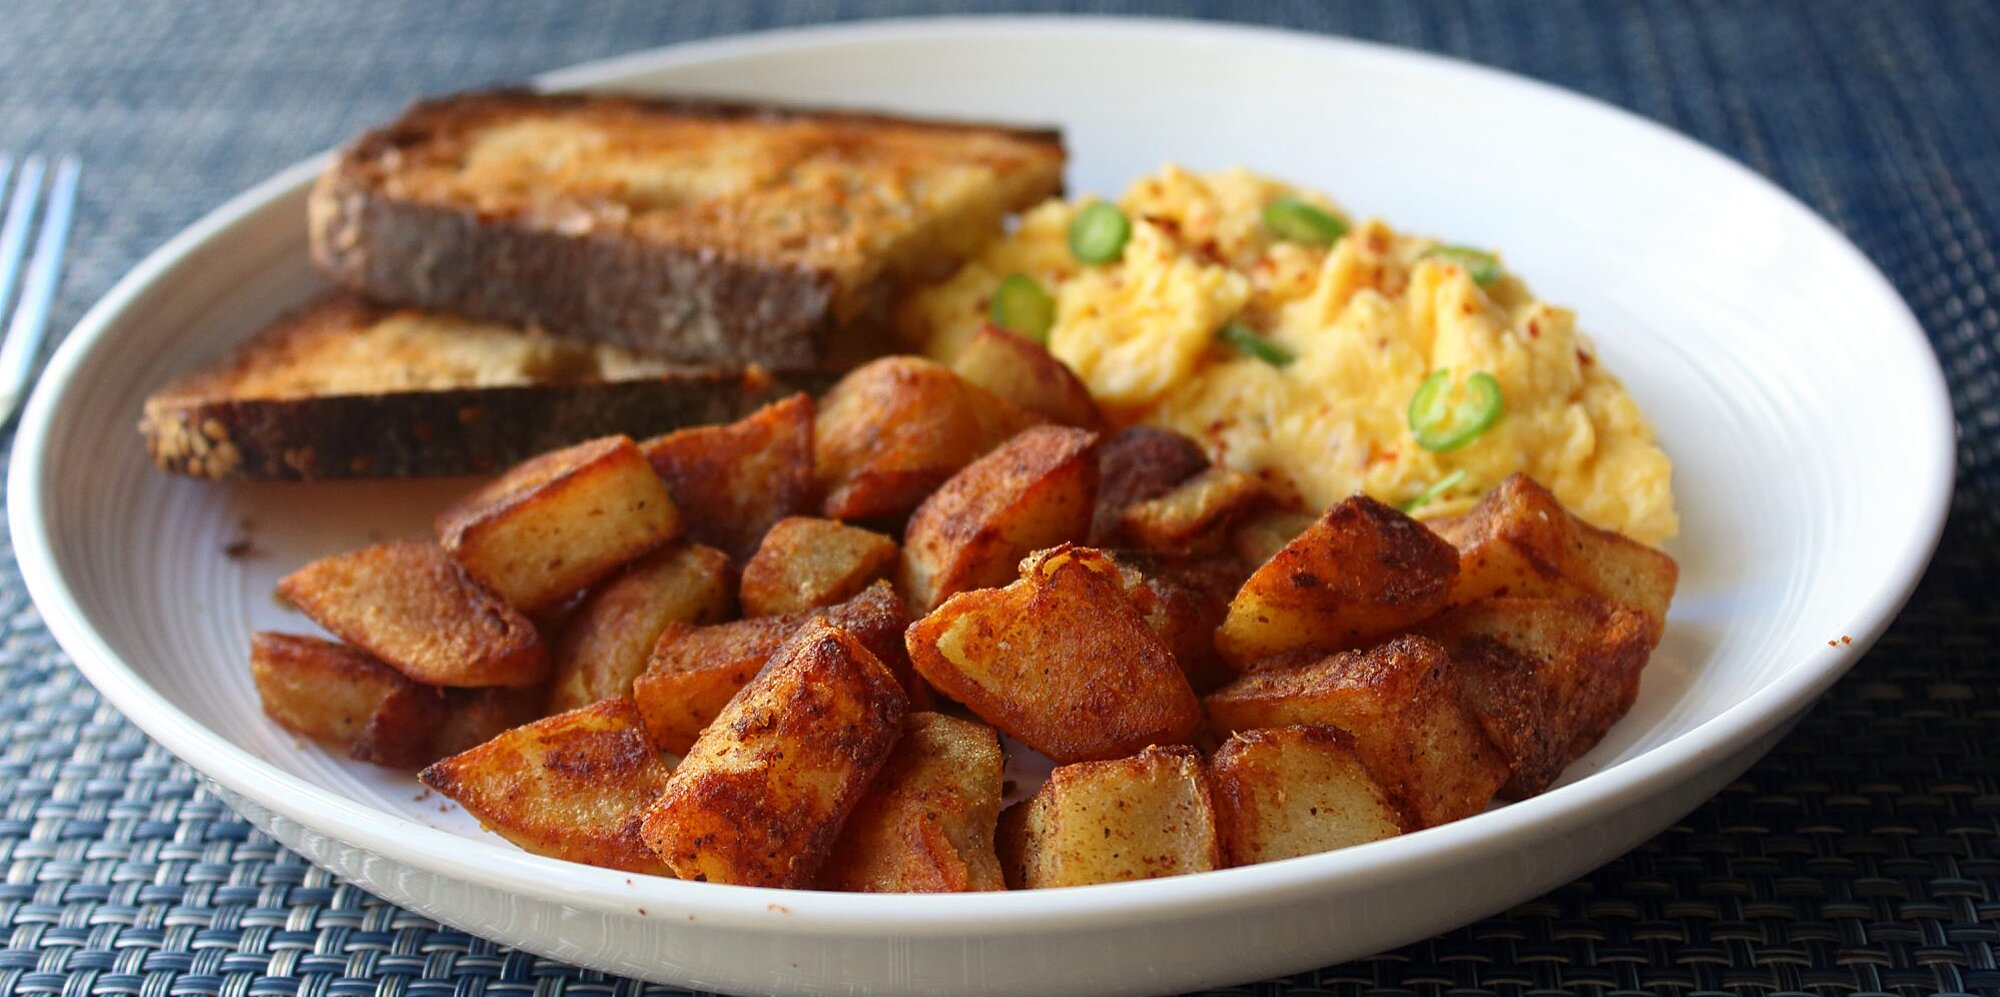 This Simple Trick is the Key to Roasting Perfectly Cooked Home Fries